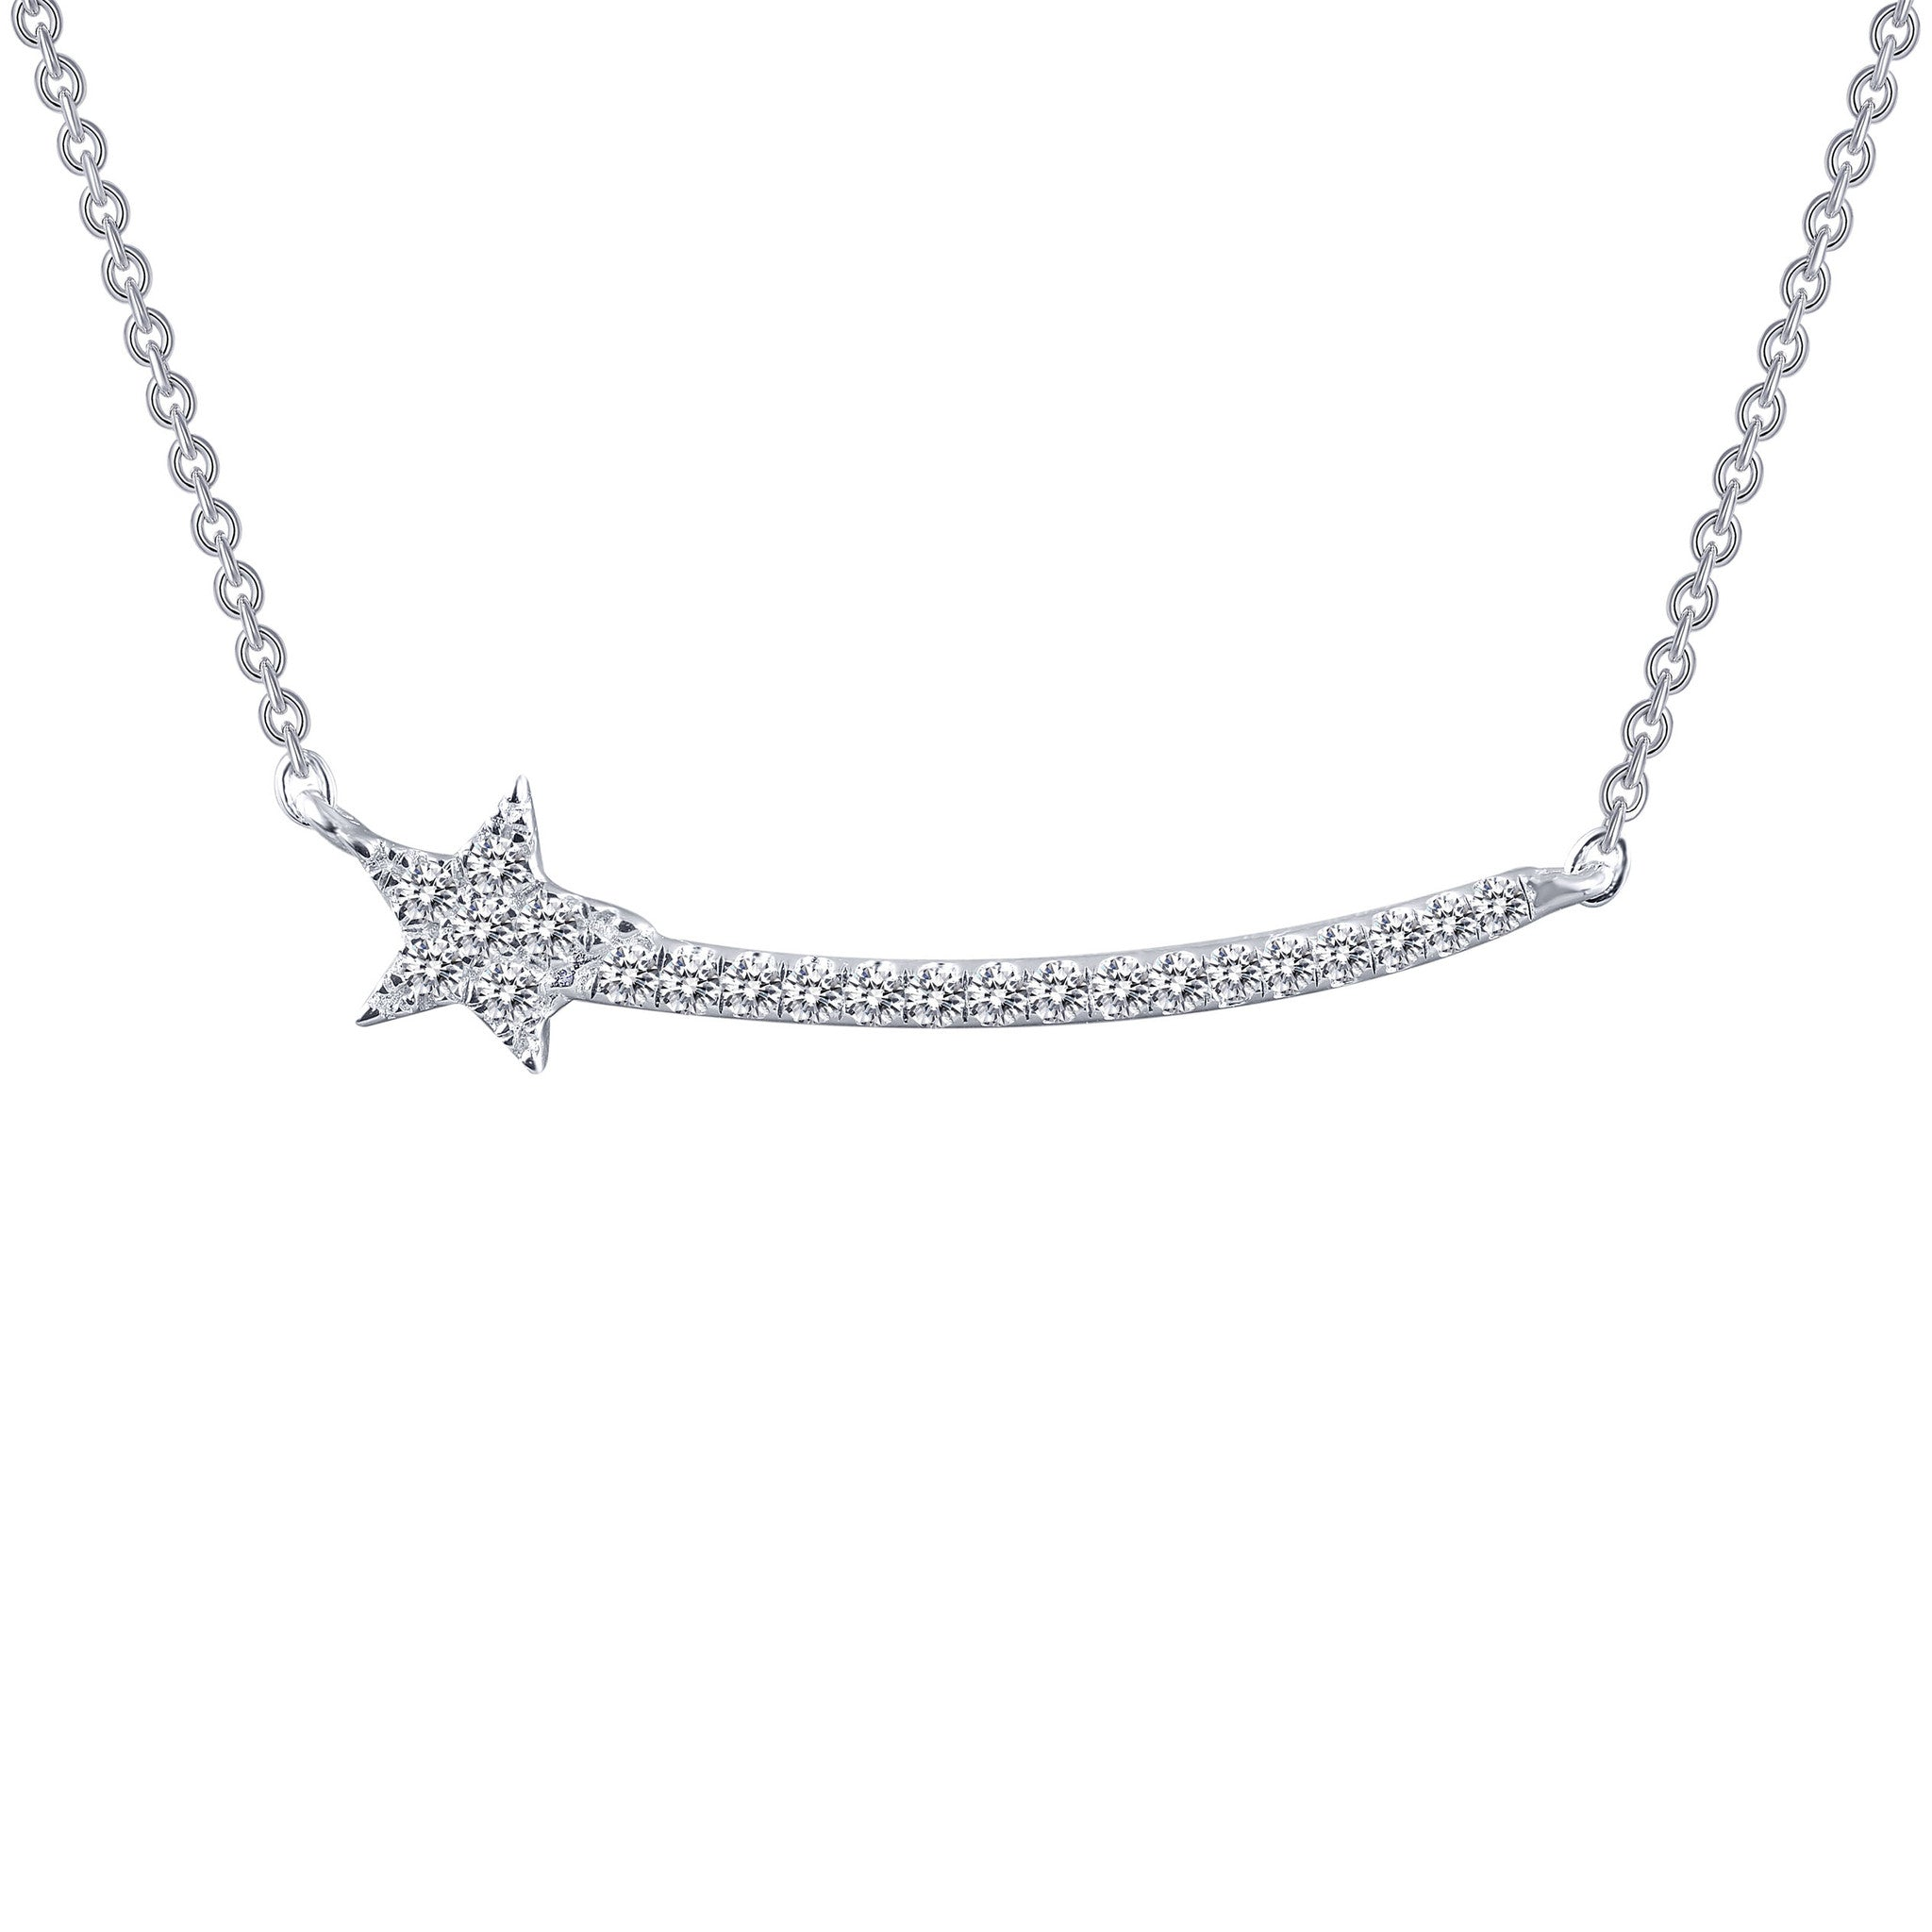 platinum and diamond necklaces necklace avanti womens image from emerald